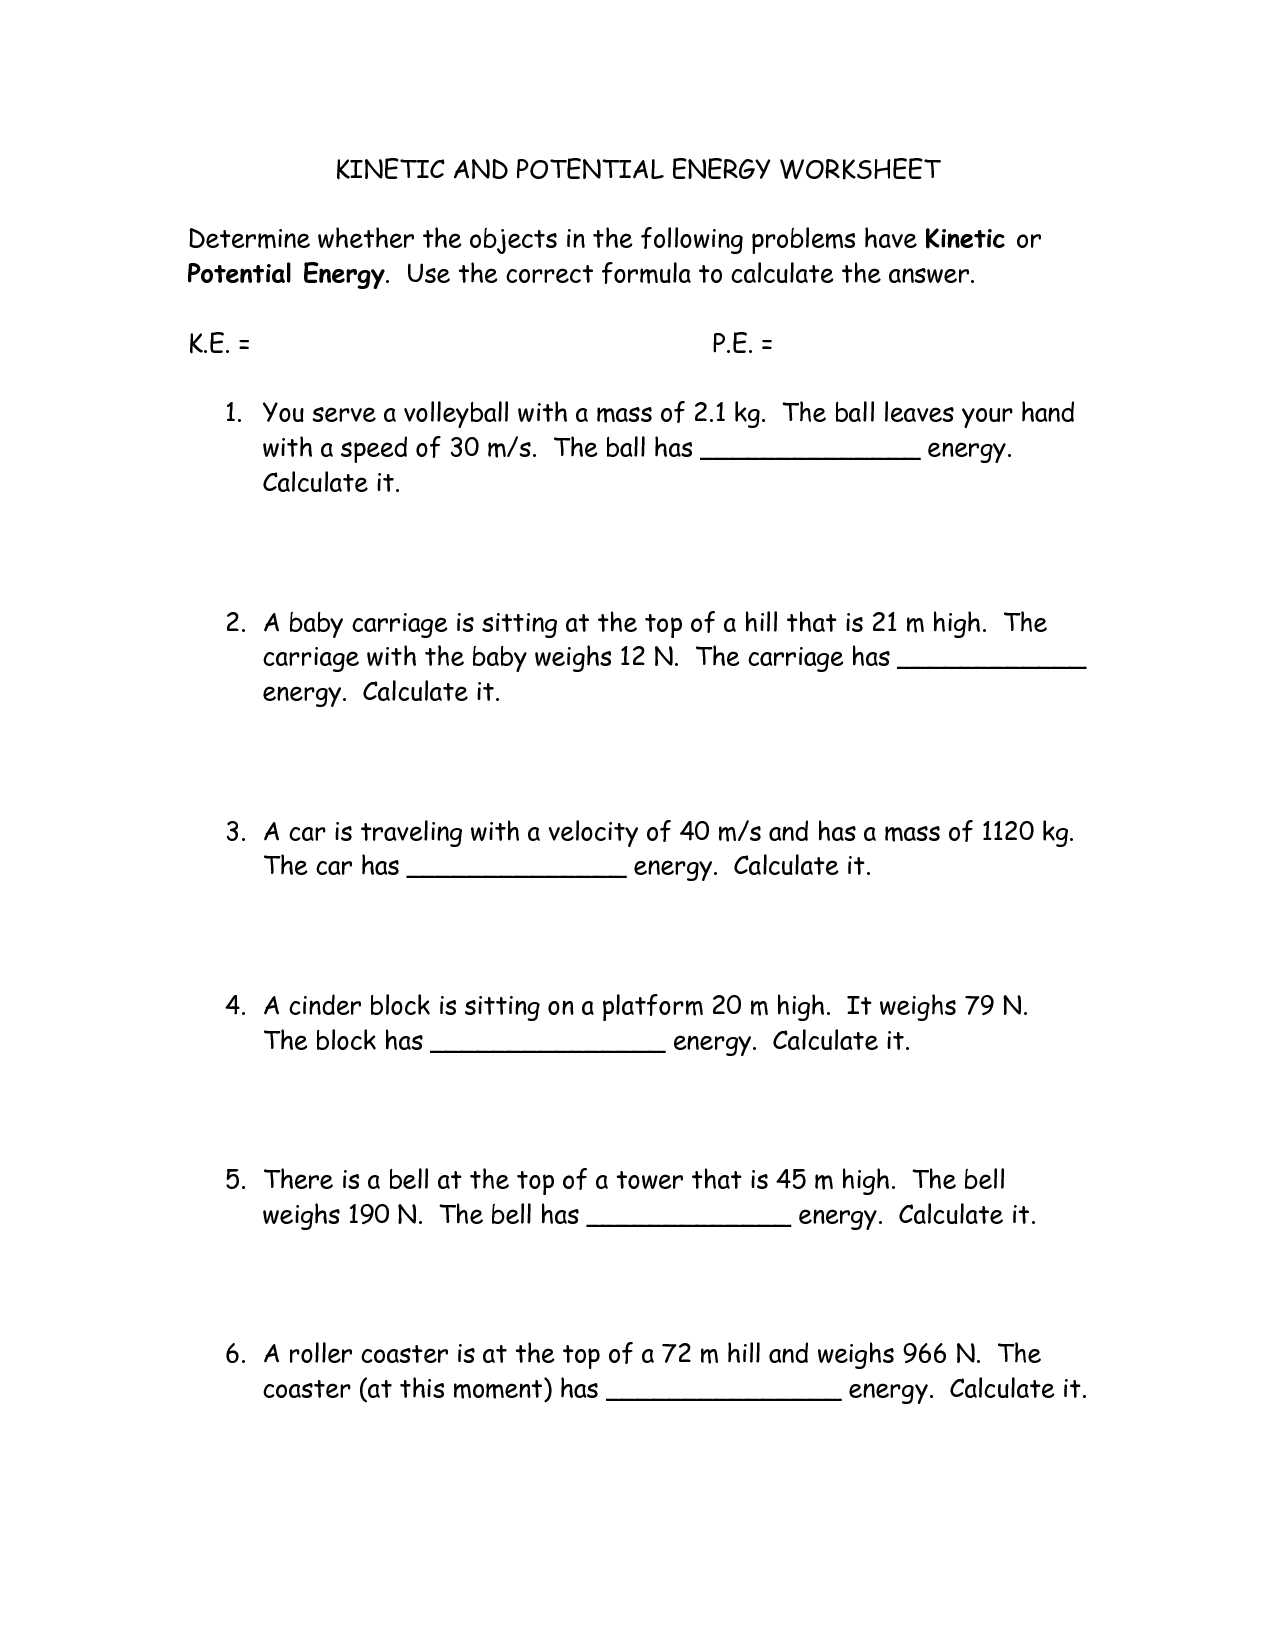 Potential Energy Problems Worksheet with Kinetic Energy Worksheet Image Collections Worksheet Math for Kids